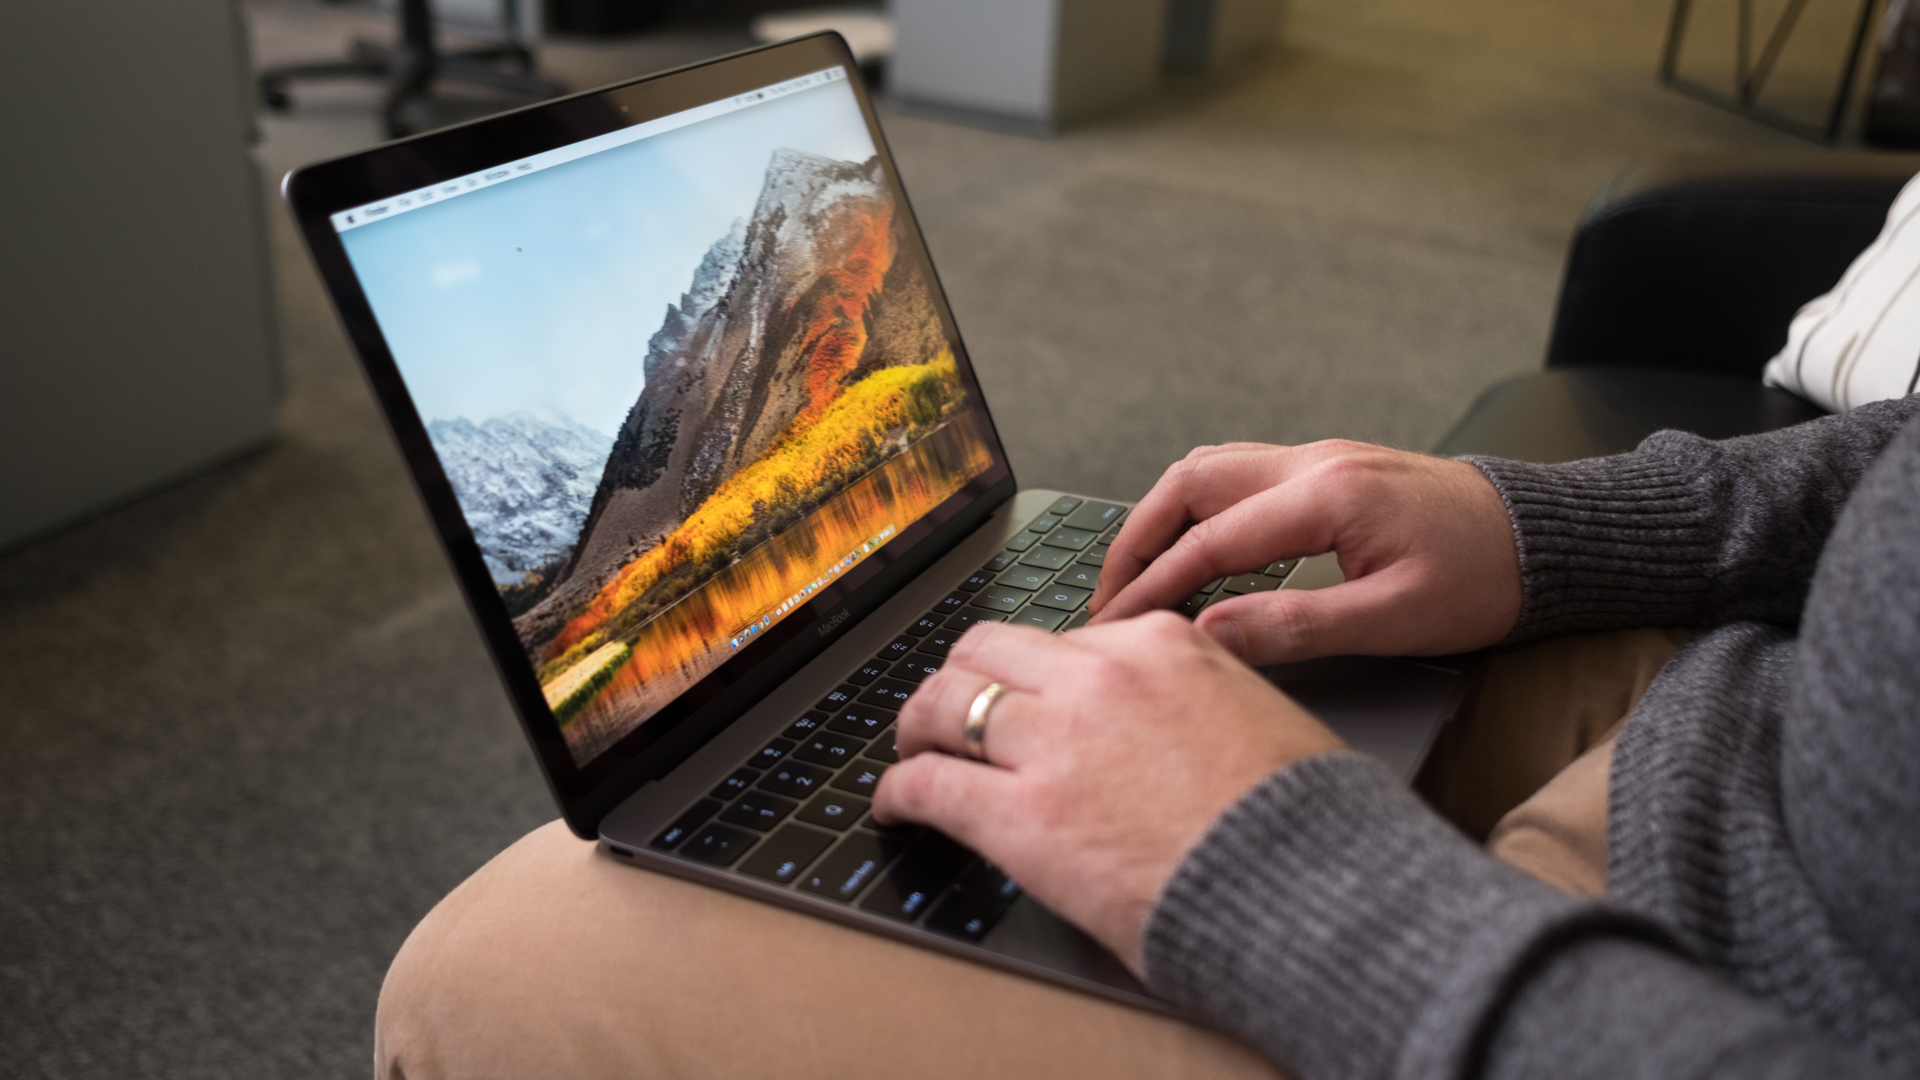 Apple may have leaked a secret MacBook Pro 2020